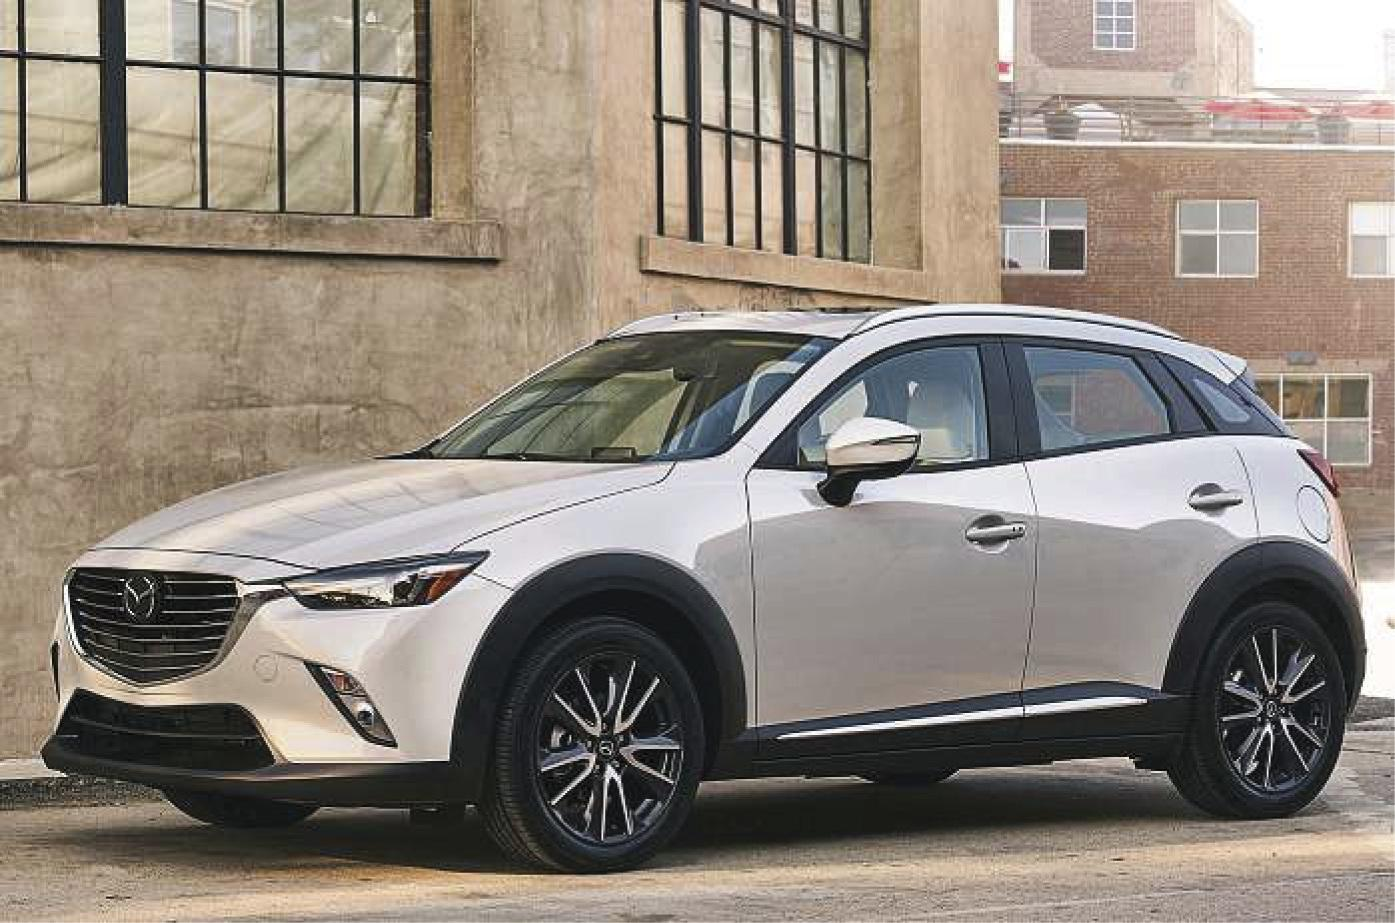 Mazda CX-3: Small crossover getsinterior, engine upgrades for 2019